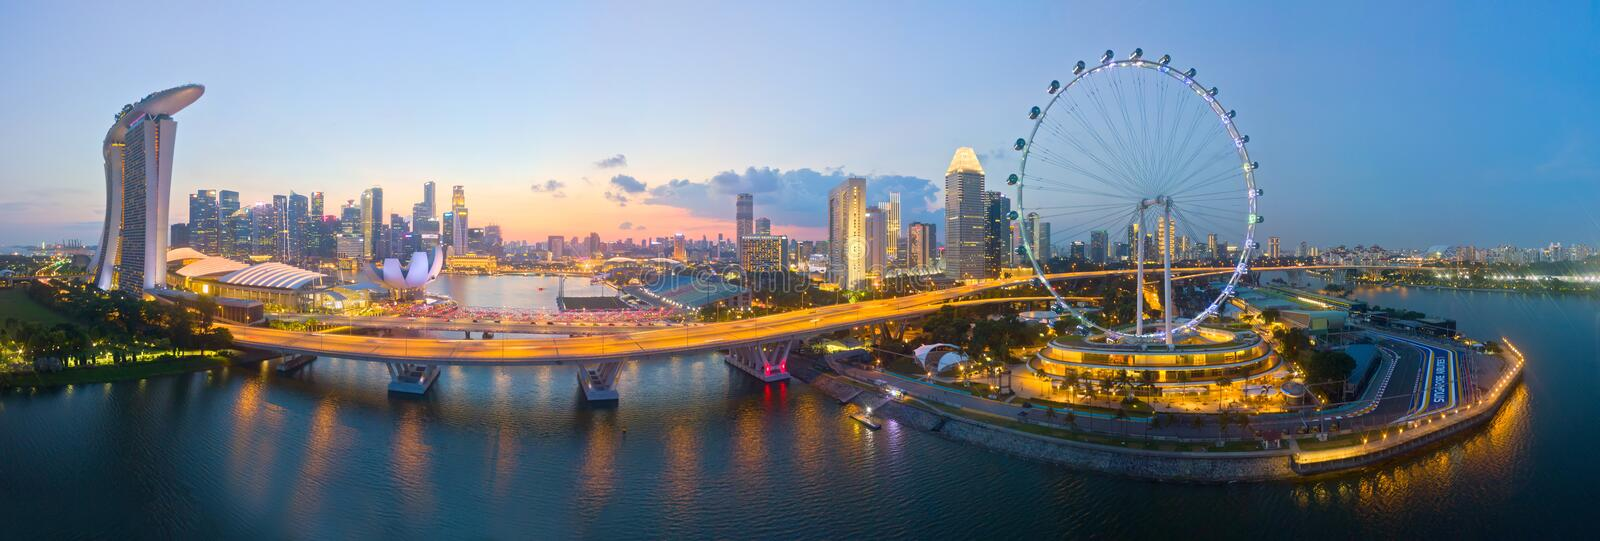 Aerial View of Singapore iconic Flyer, Marina Bay Sands Hotel and part of F1 track stock photo